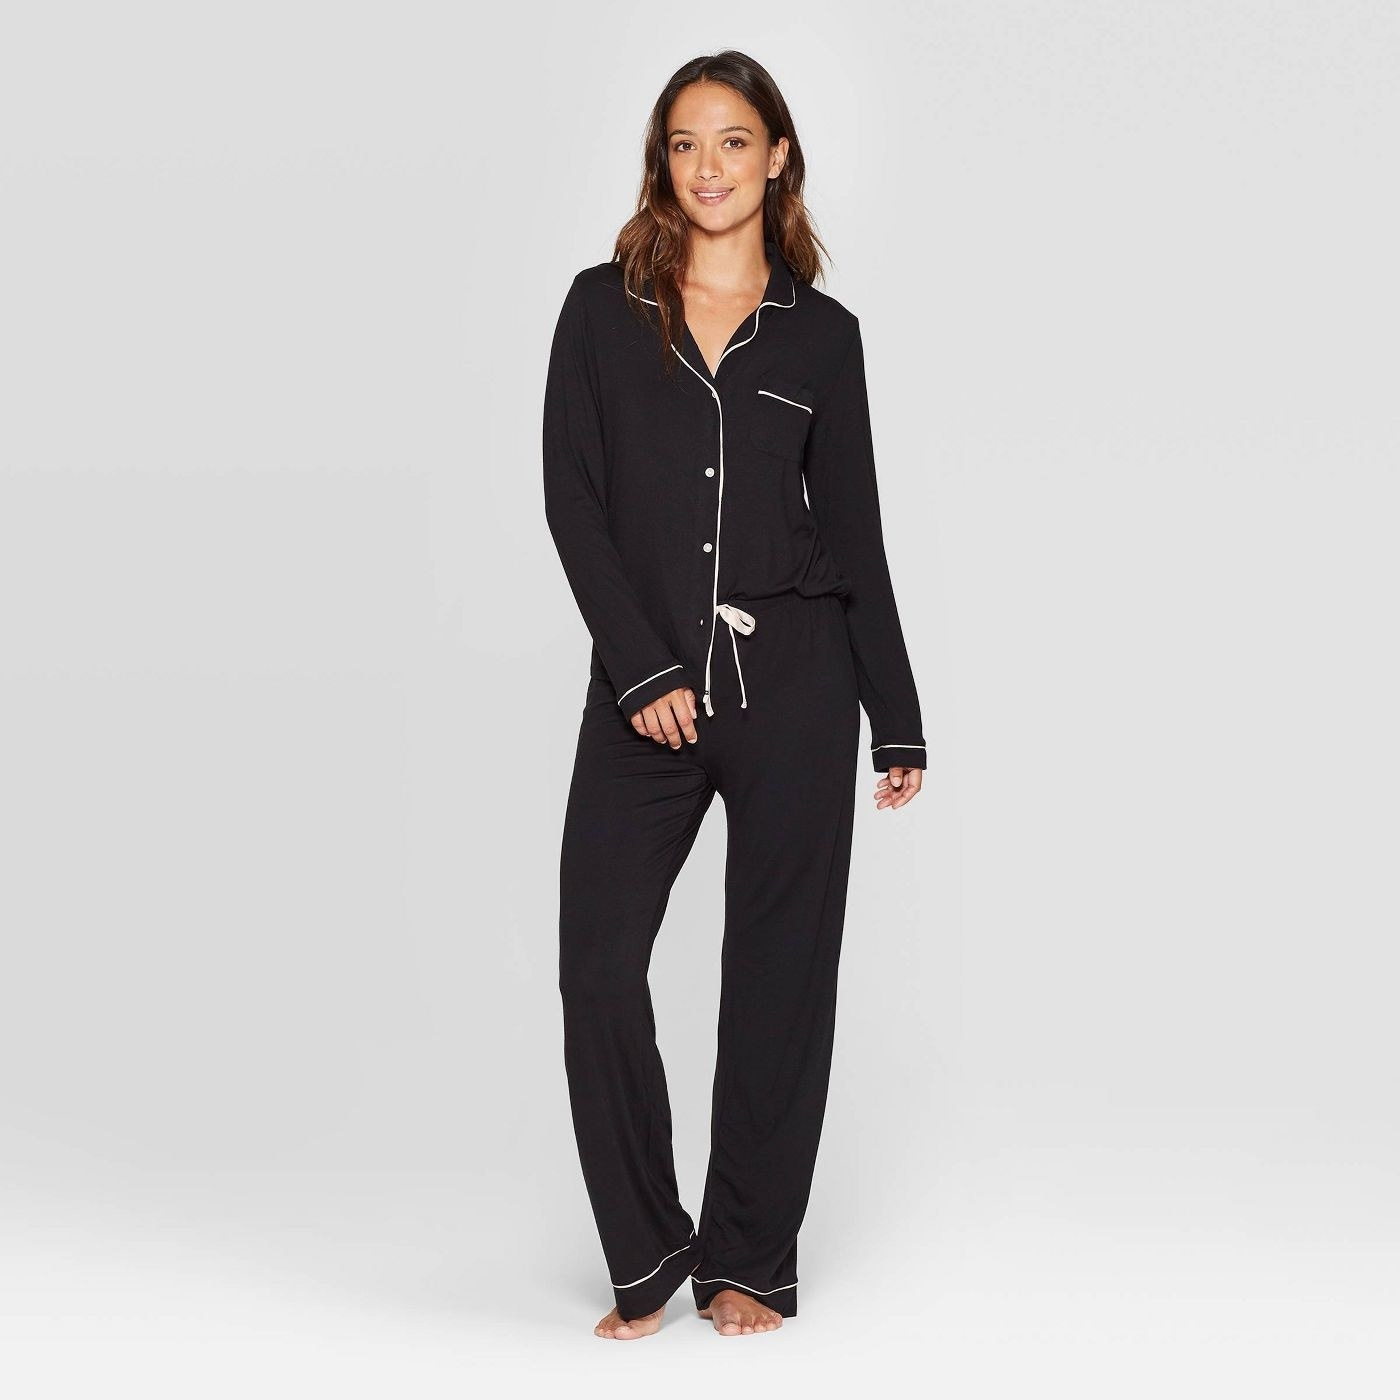 model wearing matching black pants and button-up top pajamas